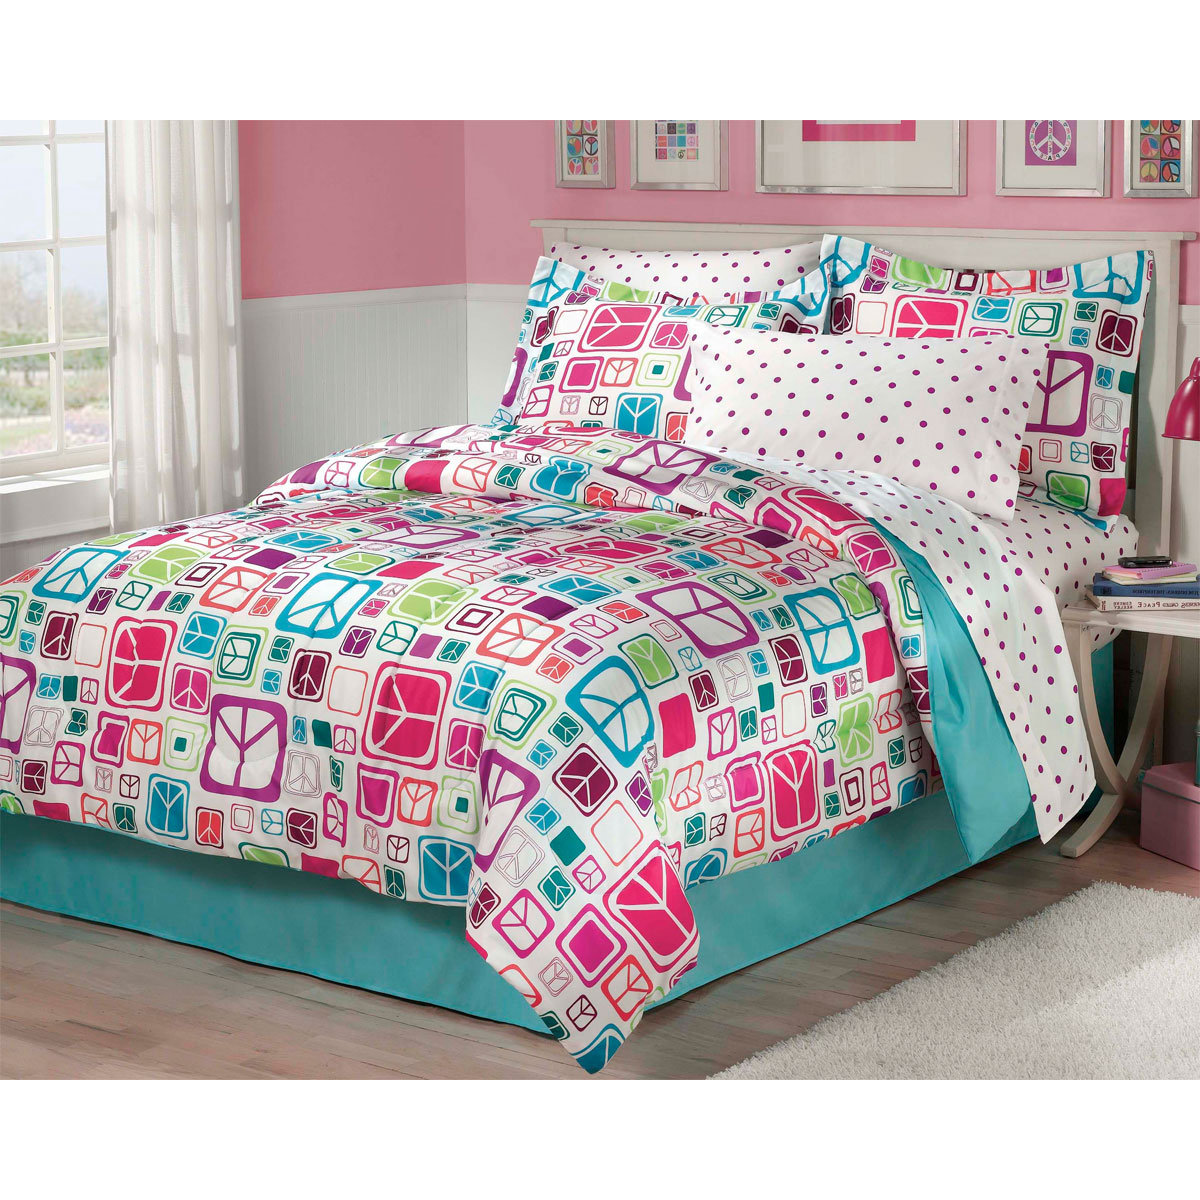 Peace Sign Bedroom Accessories: Peace Signs Bedding Set